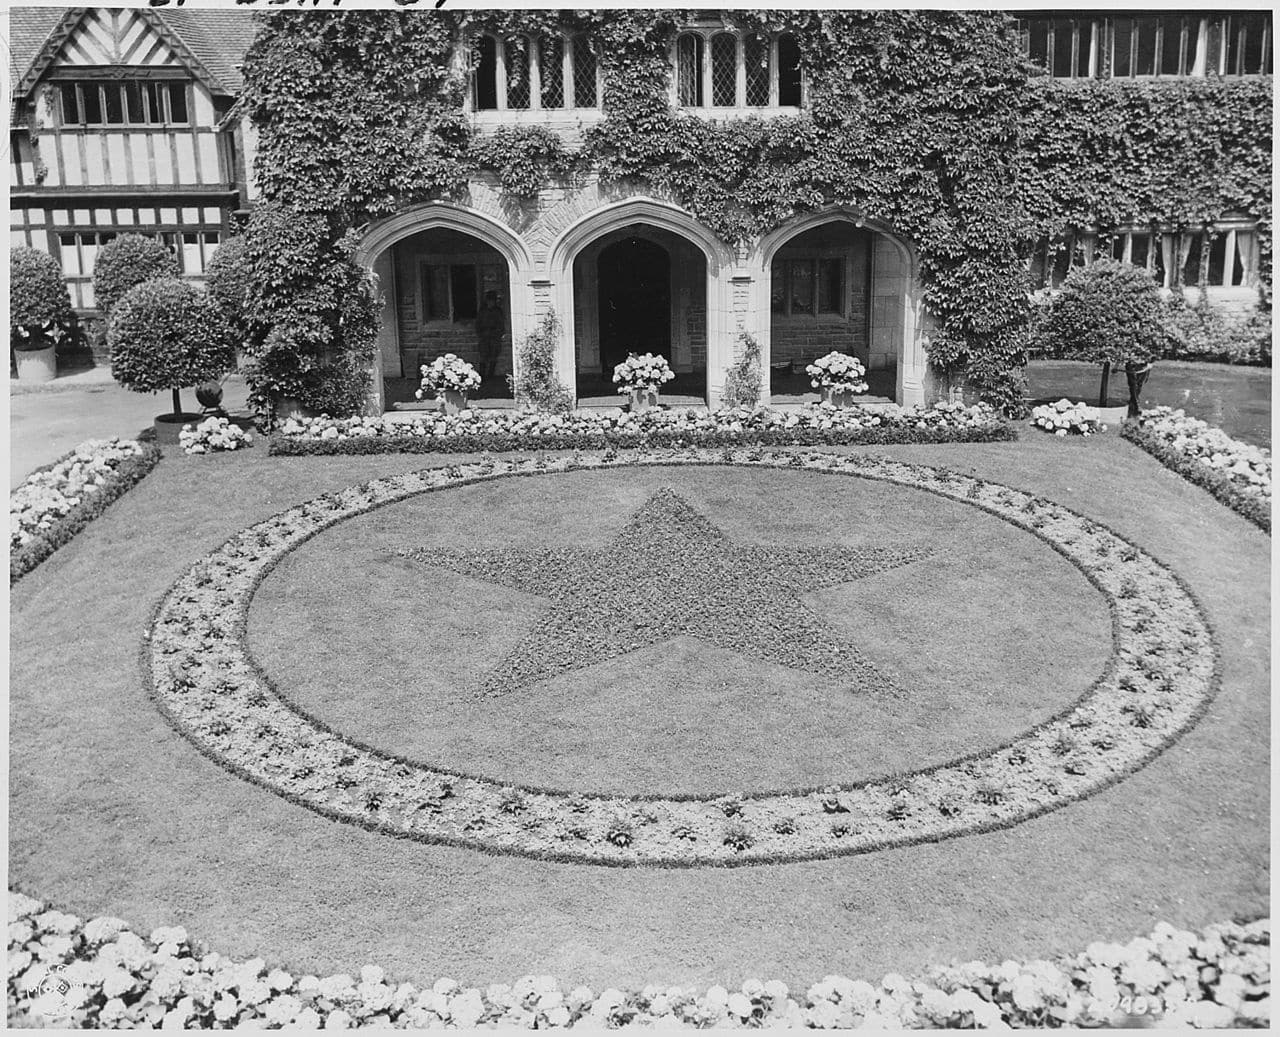 The Potsdam Conference - July 23rd 1945 - The main courtyard of Schloss Cecelienhof in 1945 - complete with its Soviet Red Star